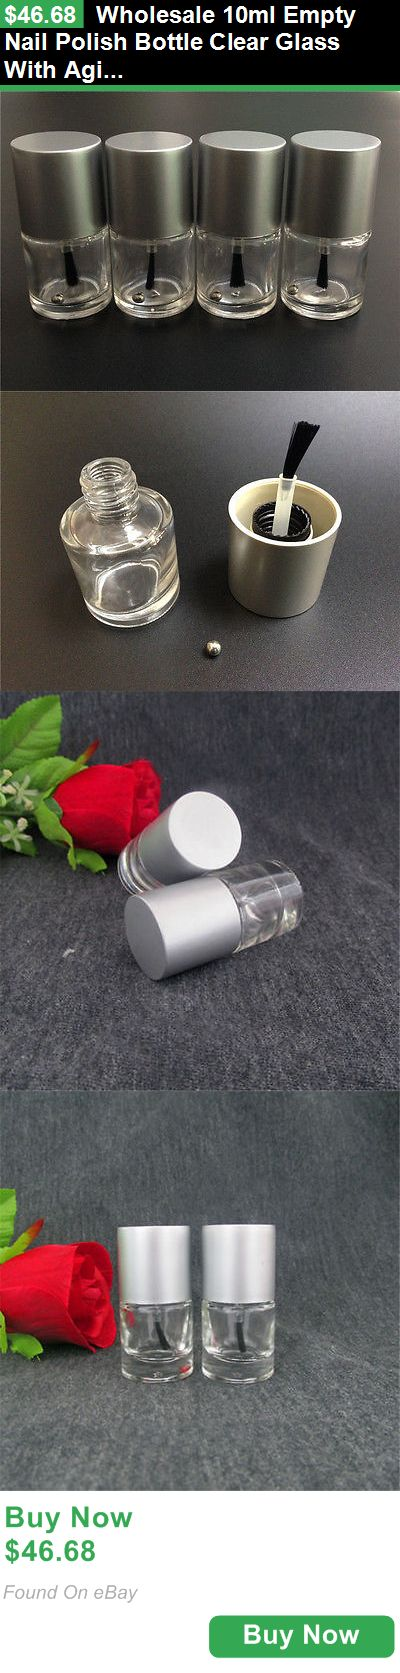 Storage and Empty Containers 107965: Wholesale 10Ml Empty Nail Polish Bottle Clear Glass With Agitator Mixing Balls BUY IT NOW ONLY: $46.68